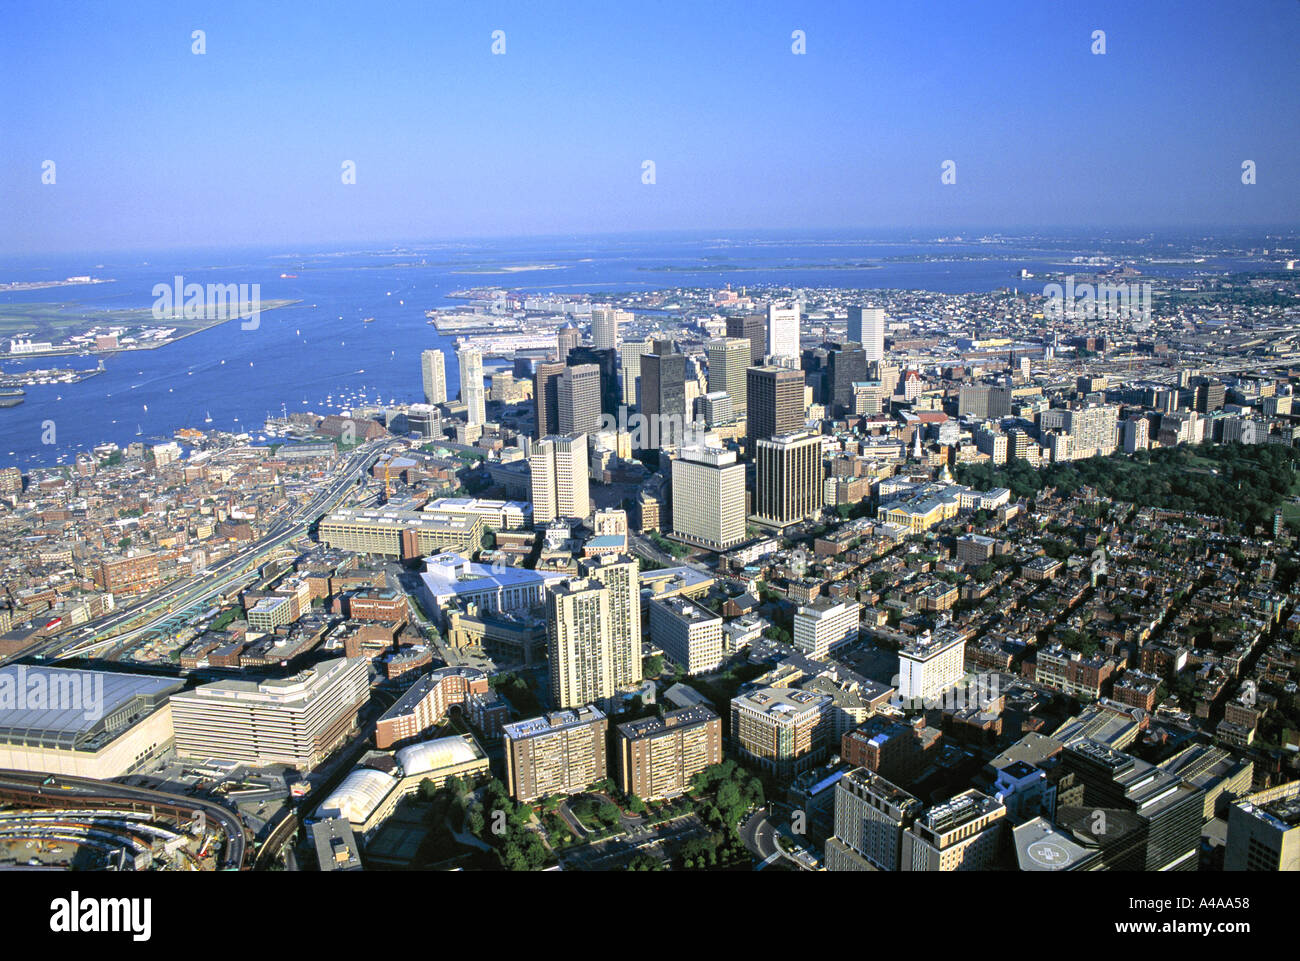 Downtown & Harbour, Boston, MA, USA - Stock Image